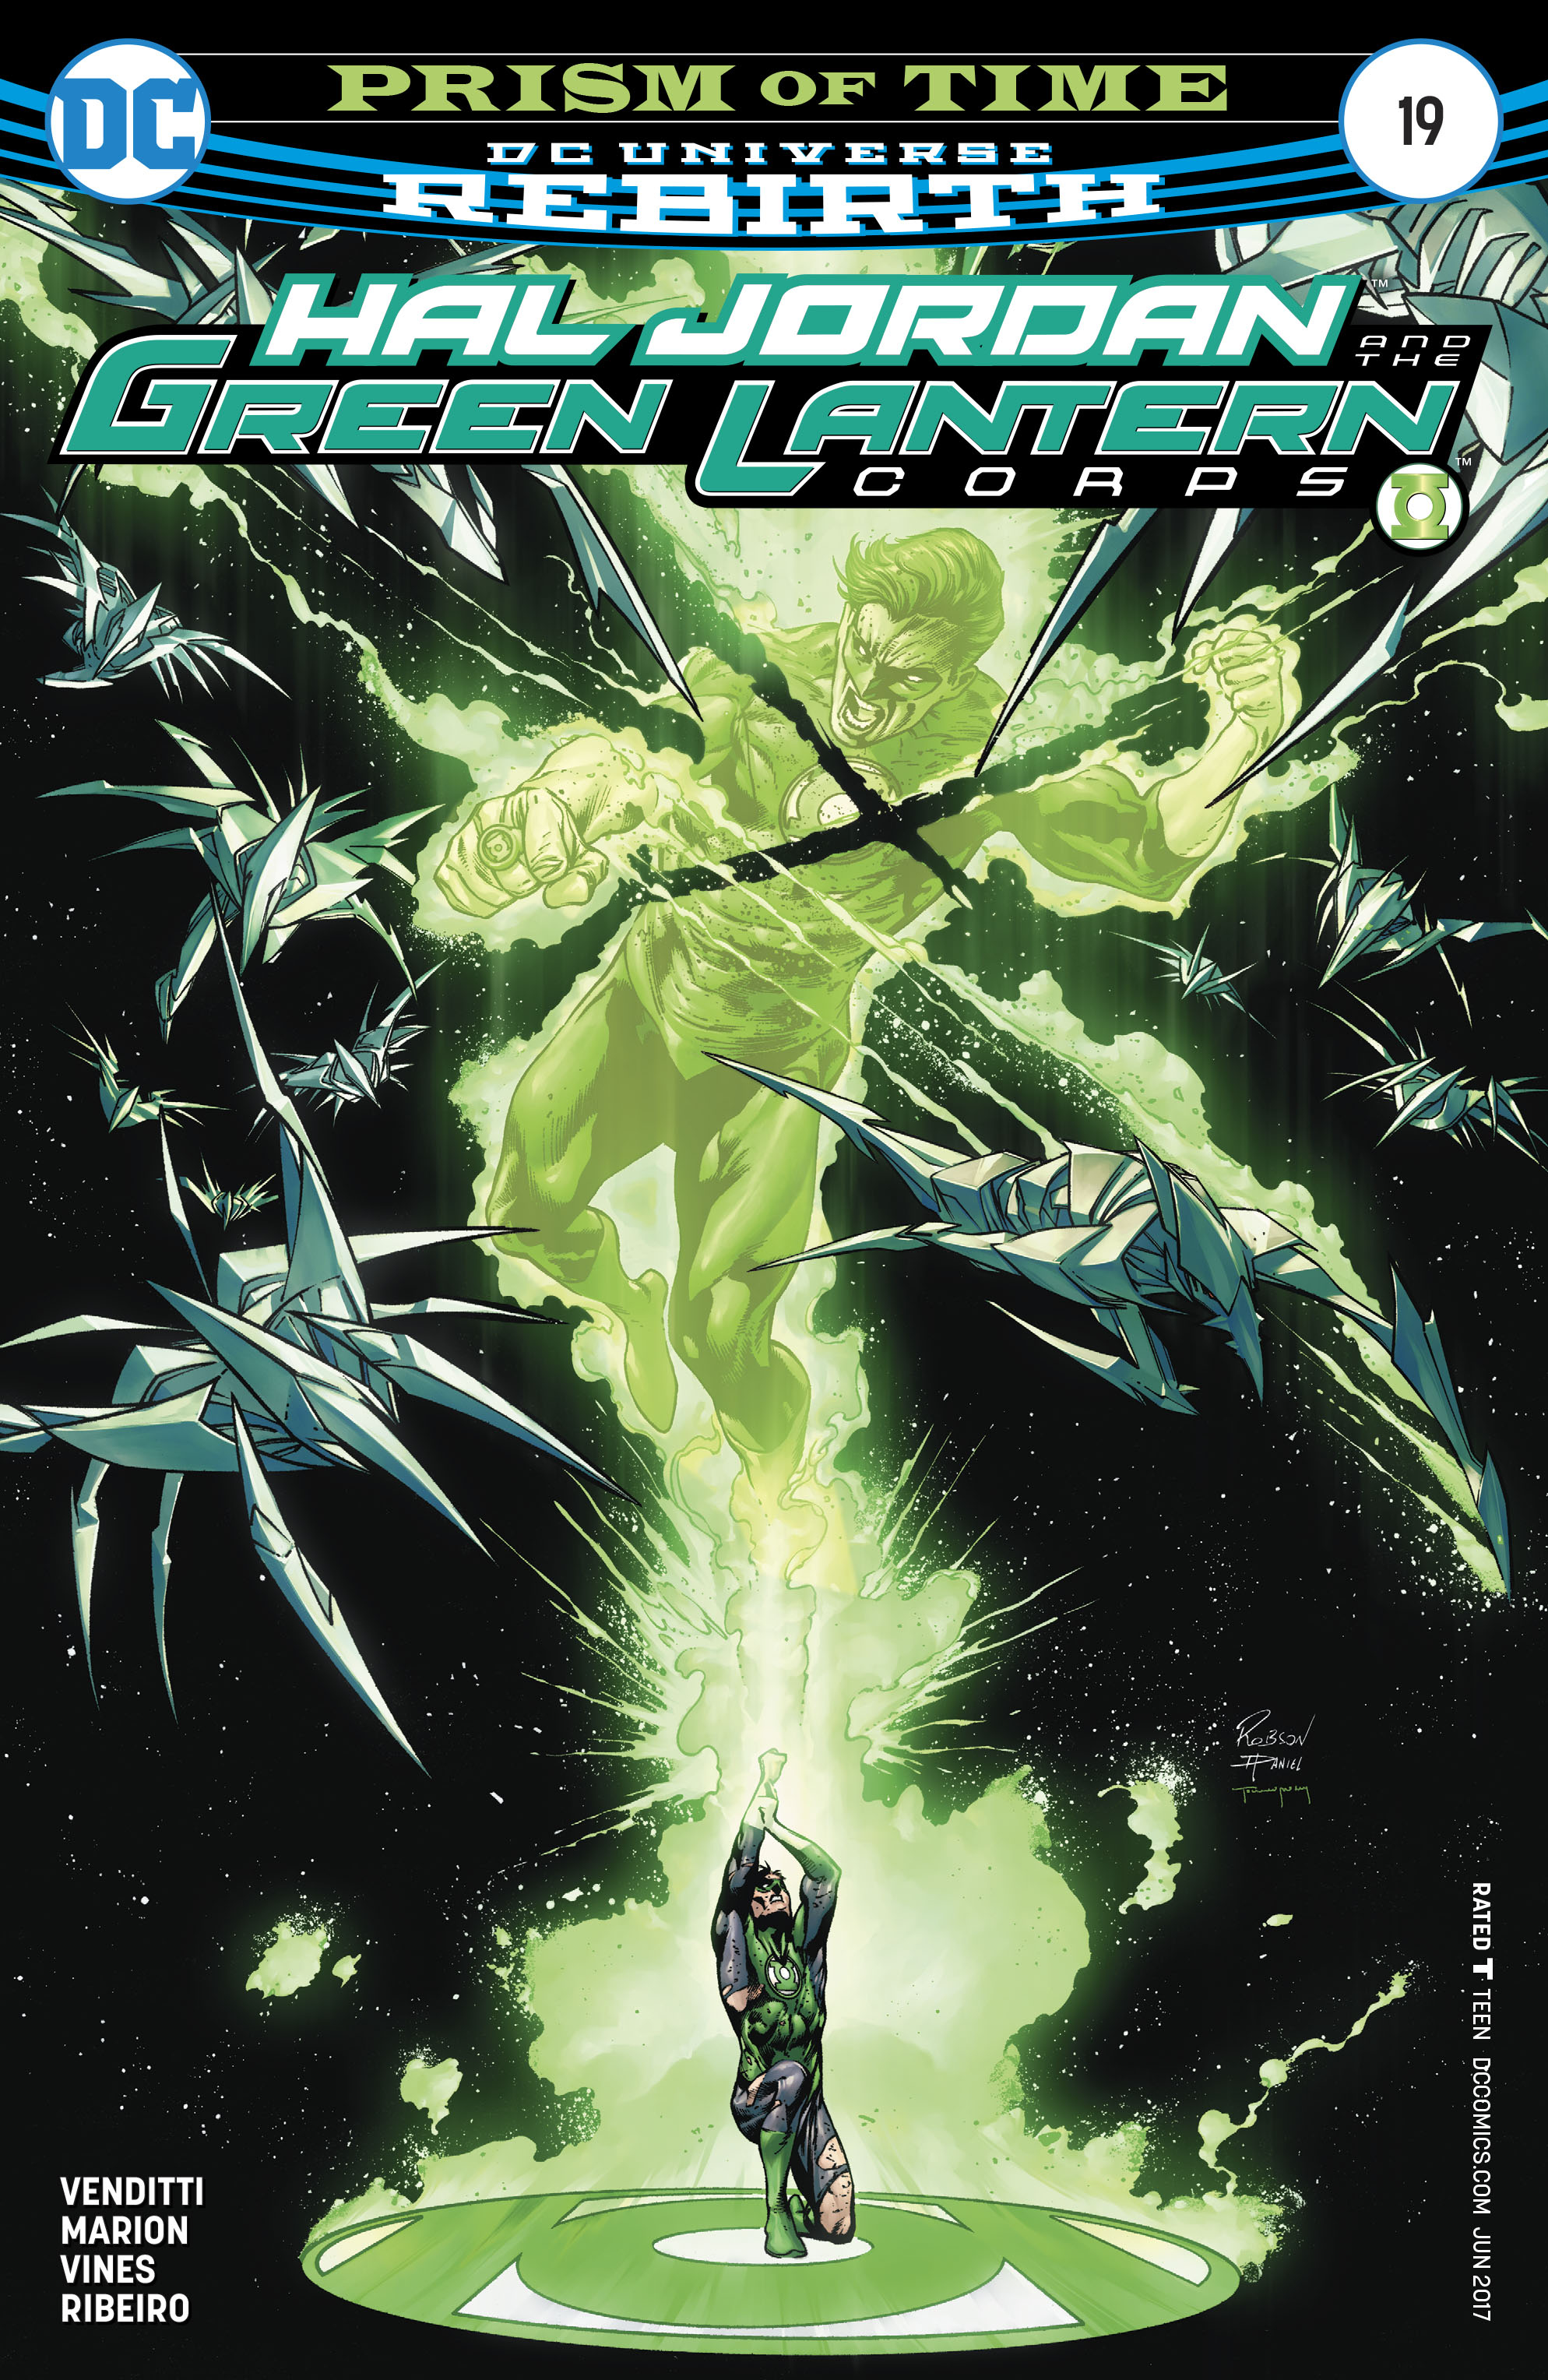 HAL JORDAN AND THE GREEN LANTERN CORPS #19